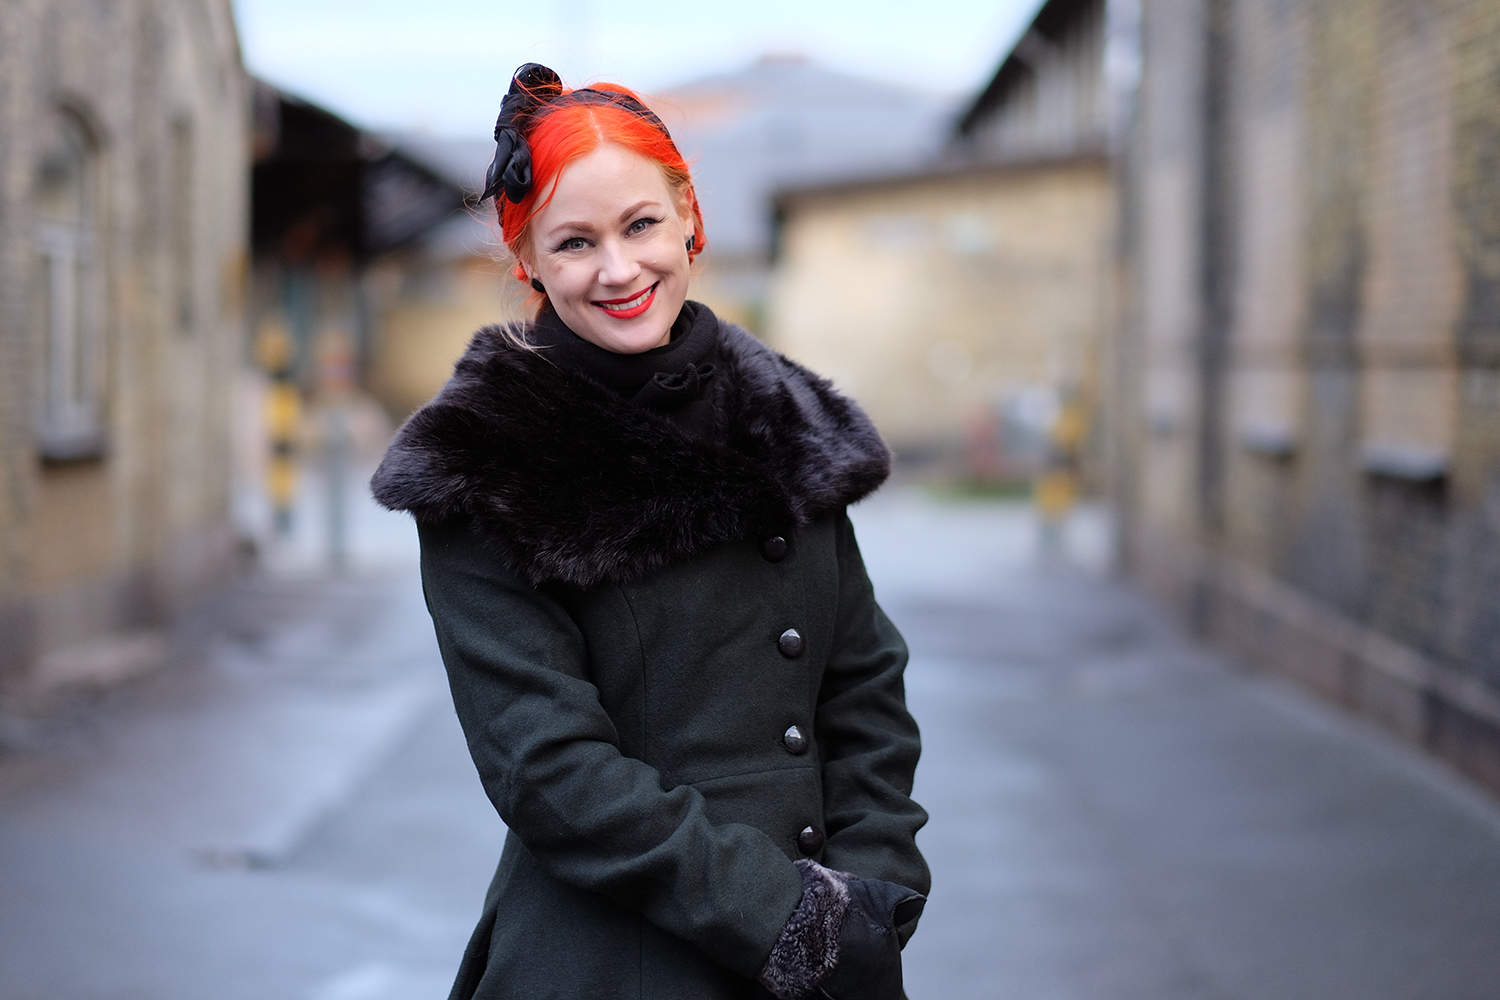 The Arlene coat from Collectif